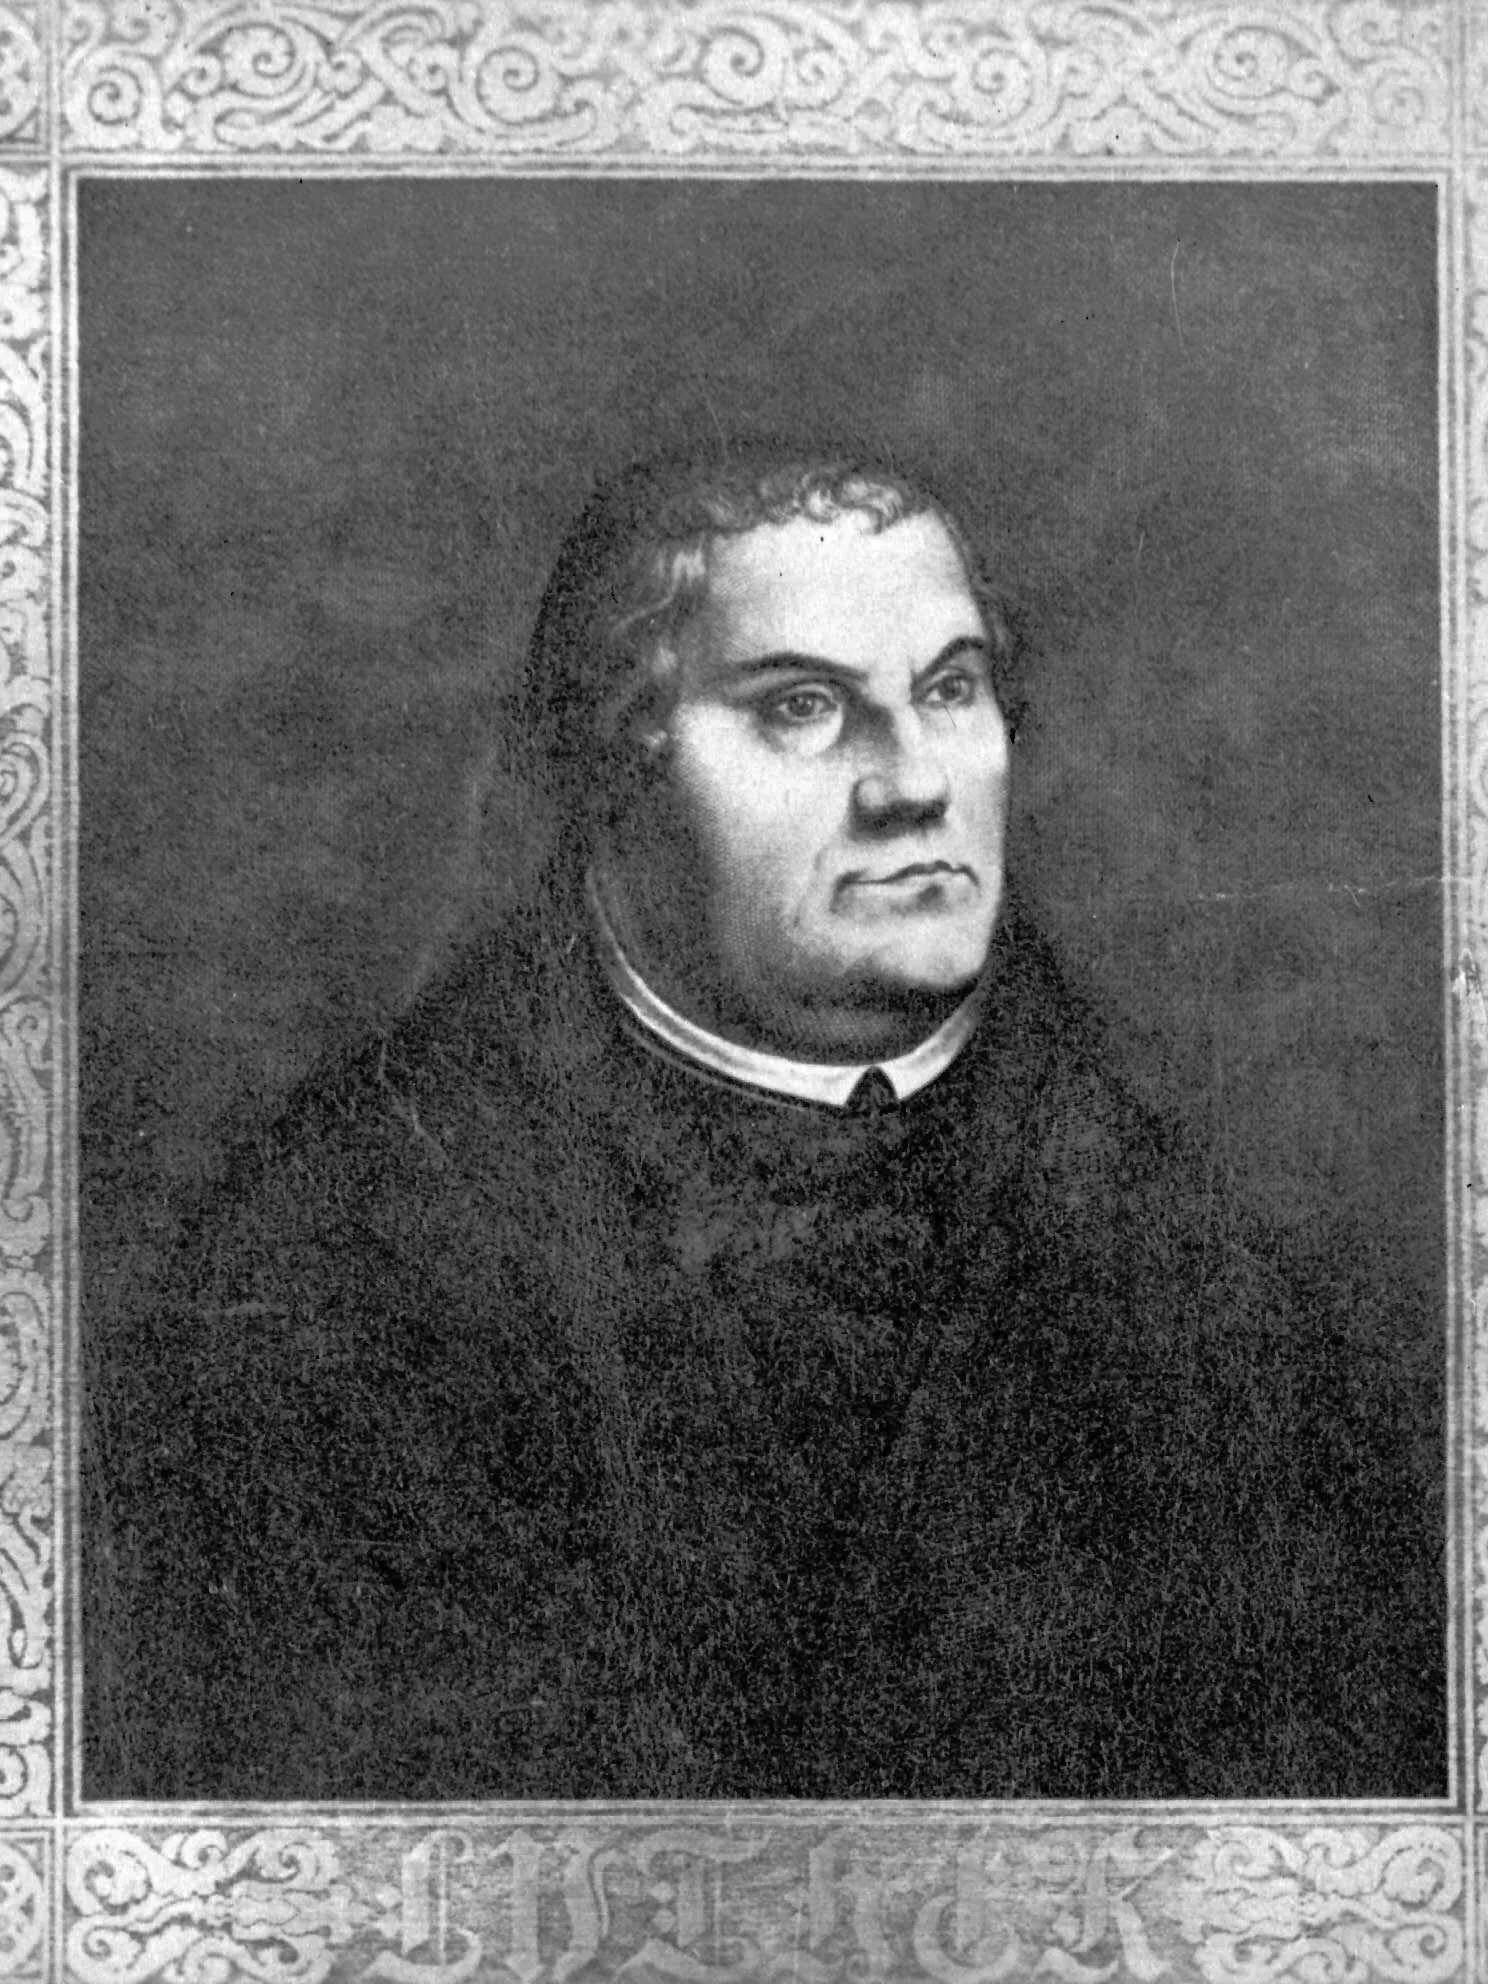 Catholic and Evangelical Lutheran bishops commemorate Reformation MARTIN LUTHER   leader of the Protestant Reformation